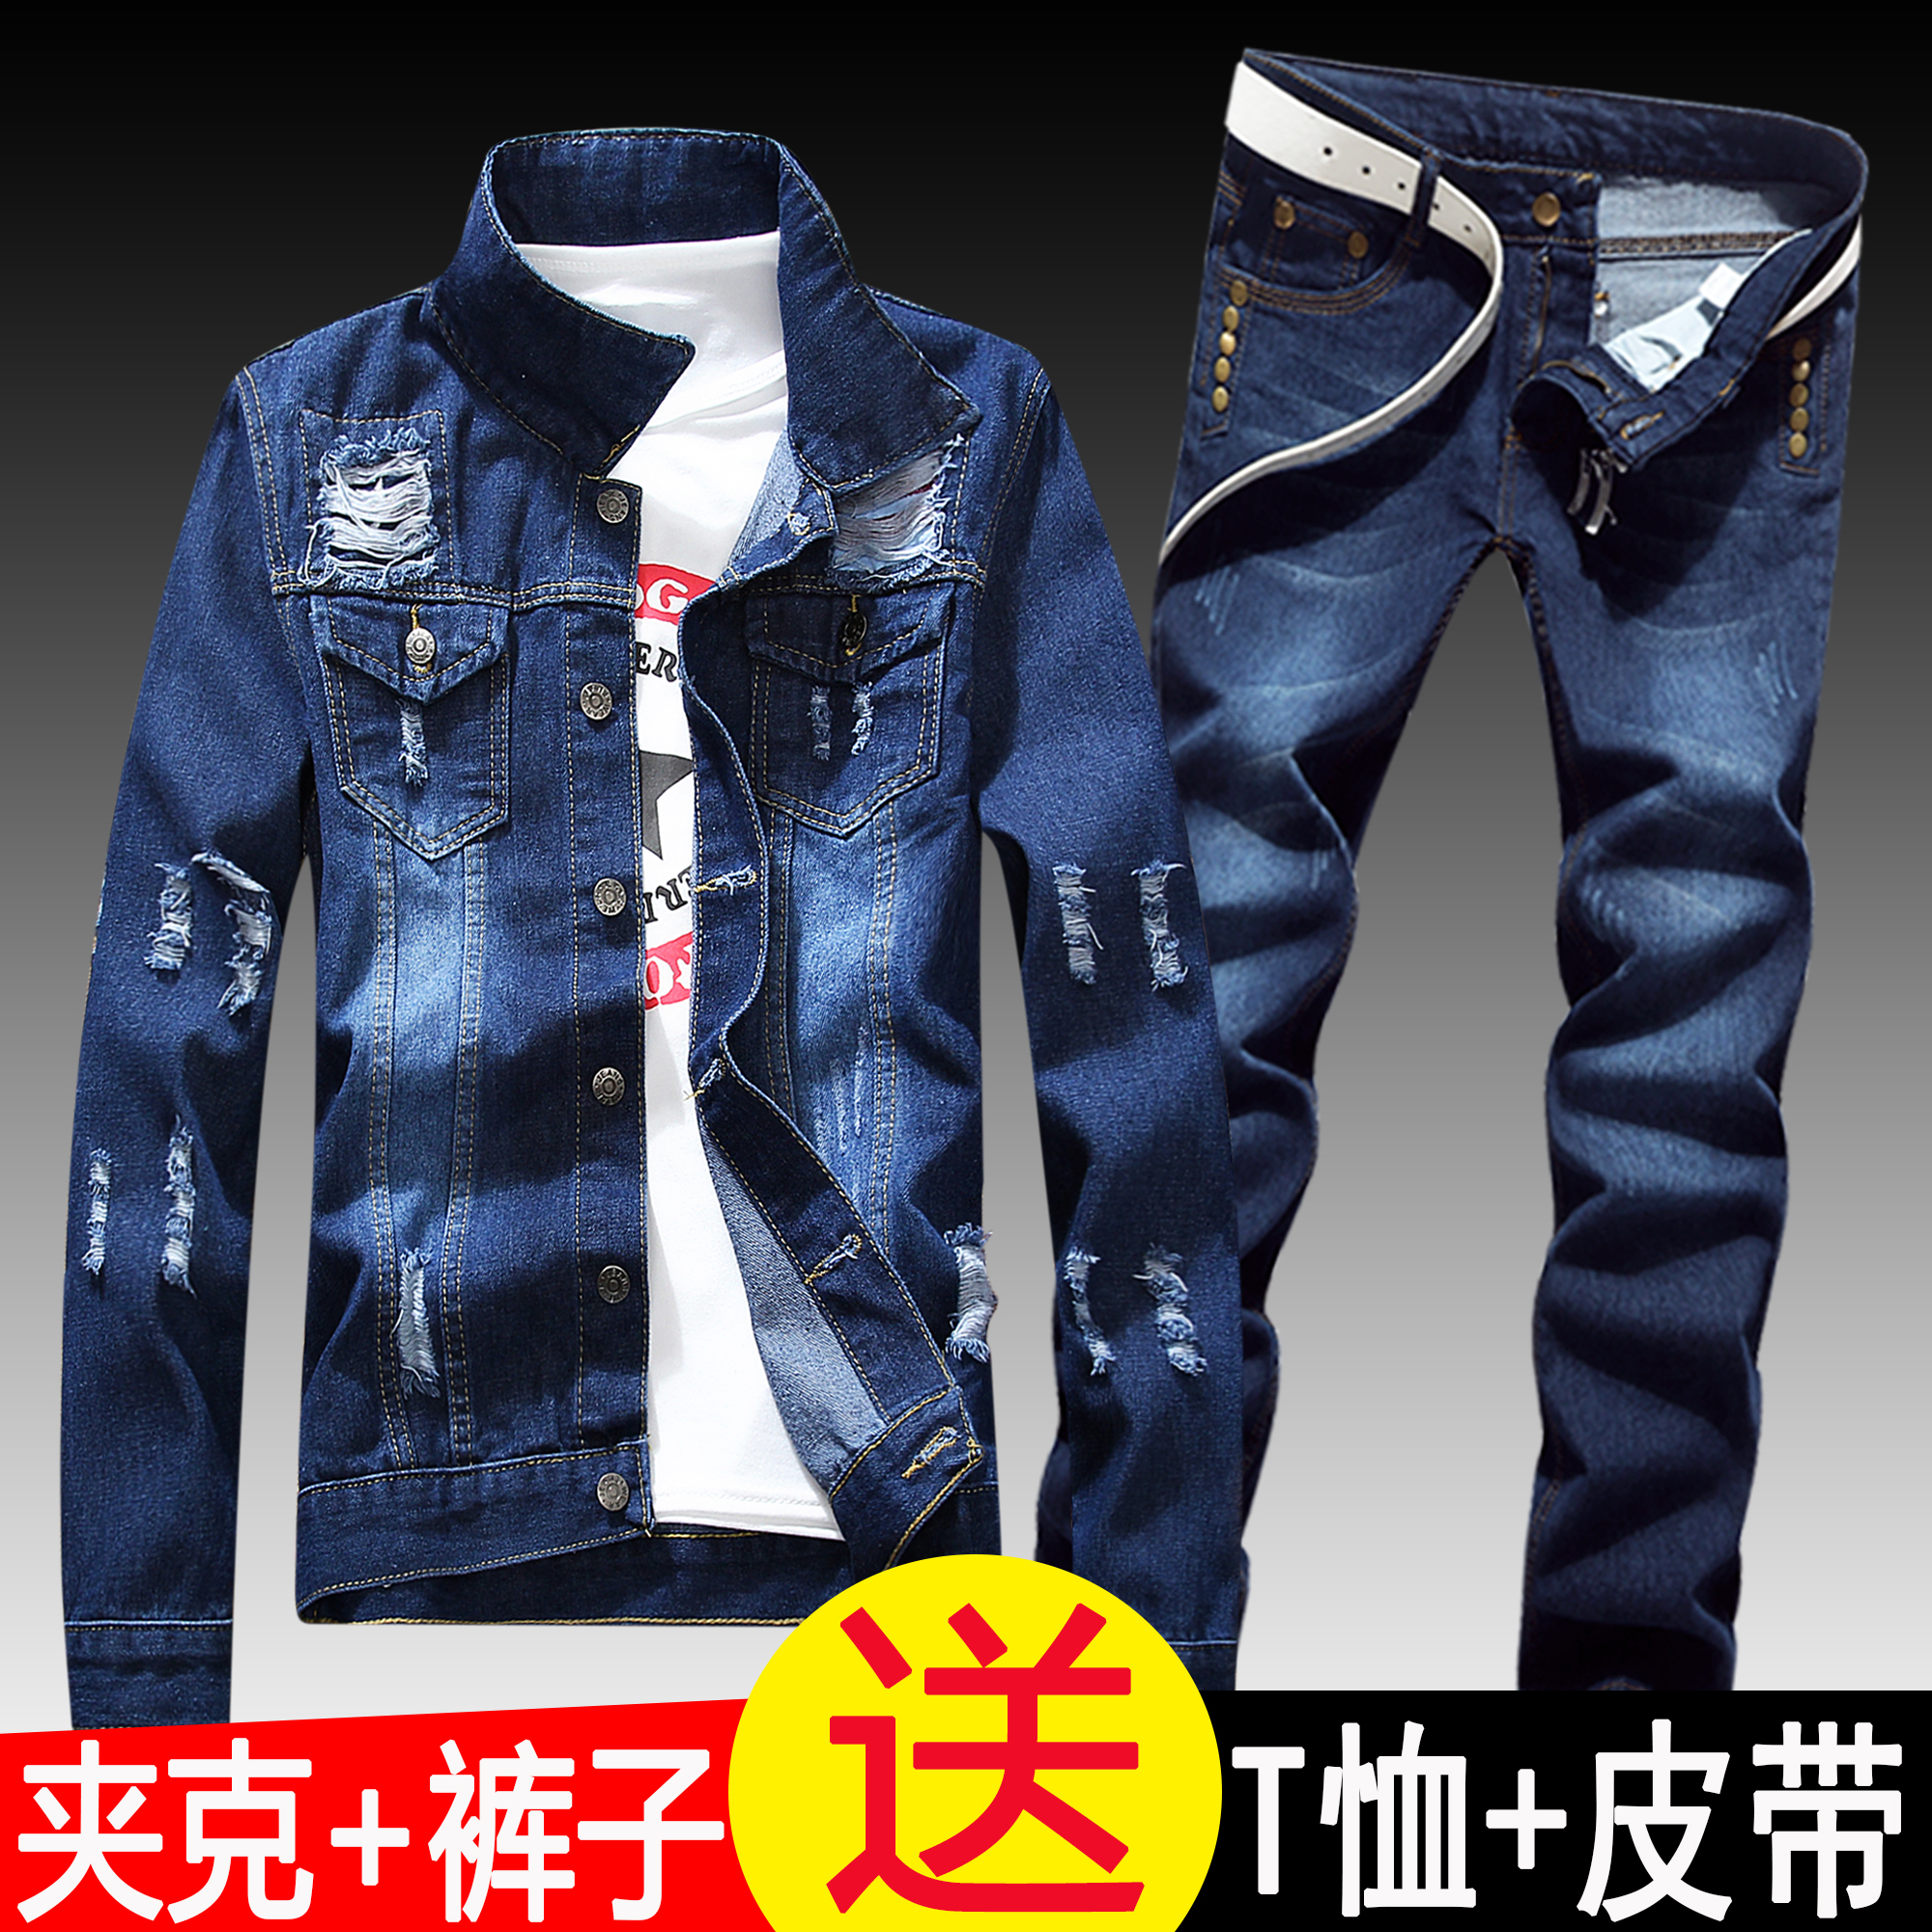 Spring and autumn mens Korean slim jacket, jeans and pants a suit of casual and handsome mens wear, hole jeans coat